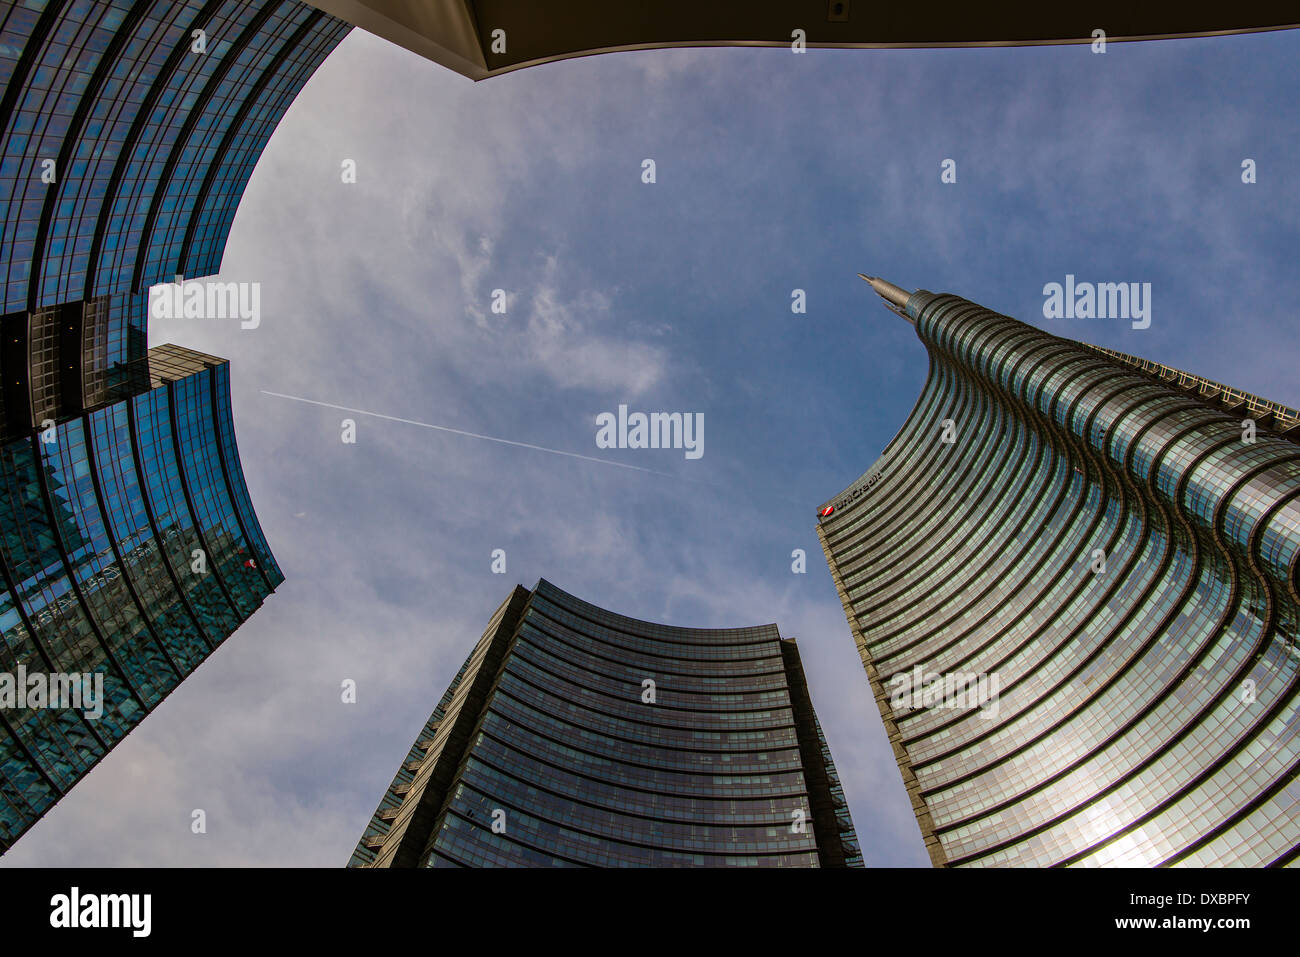 Porta Nuova business district, Milan, Lombardy, Italy - Stock Image